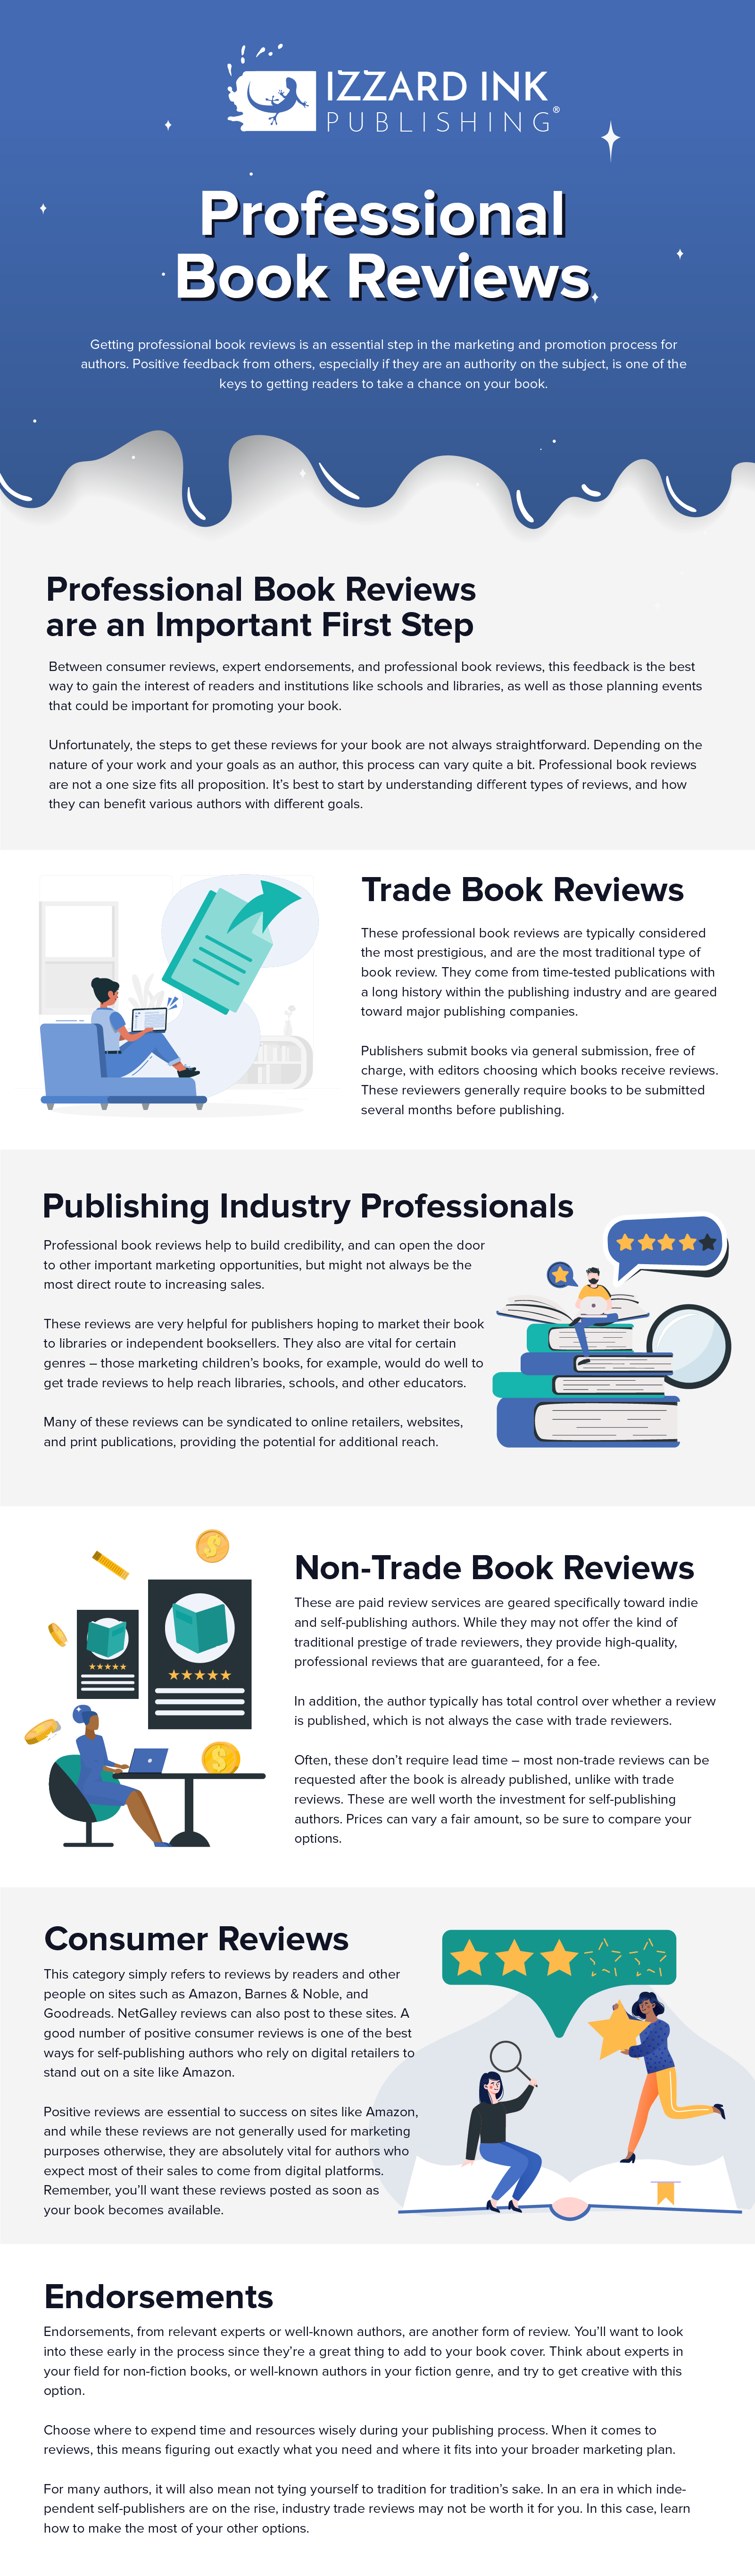 Professional Book Reviews Infographic